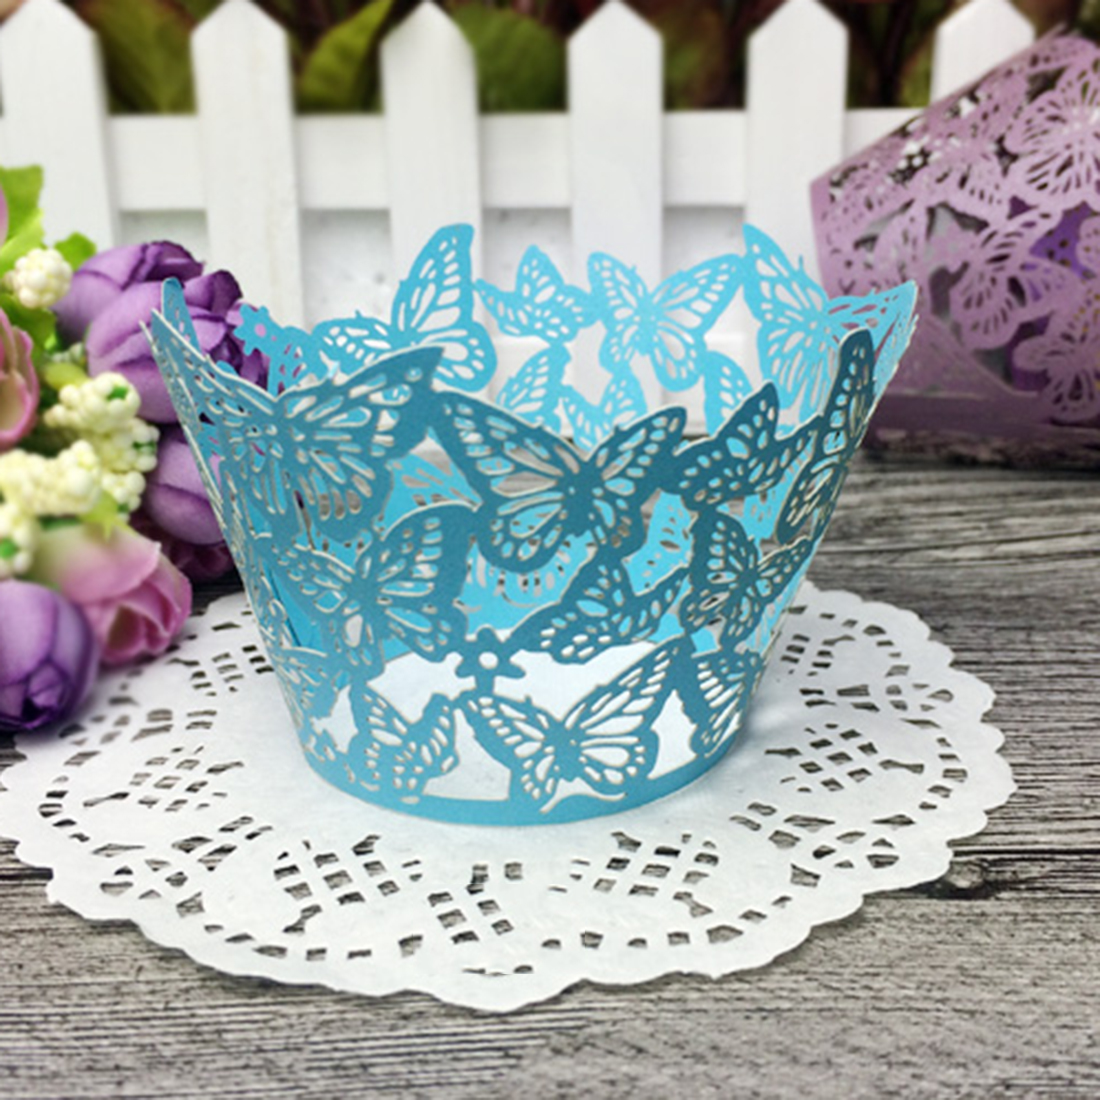 SURWISH 60Pcs Butterfly Pattern Cupcake Wrappers Hollowed-out Lace Paper Cake Surrounding Edge Brithday Party Supplies